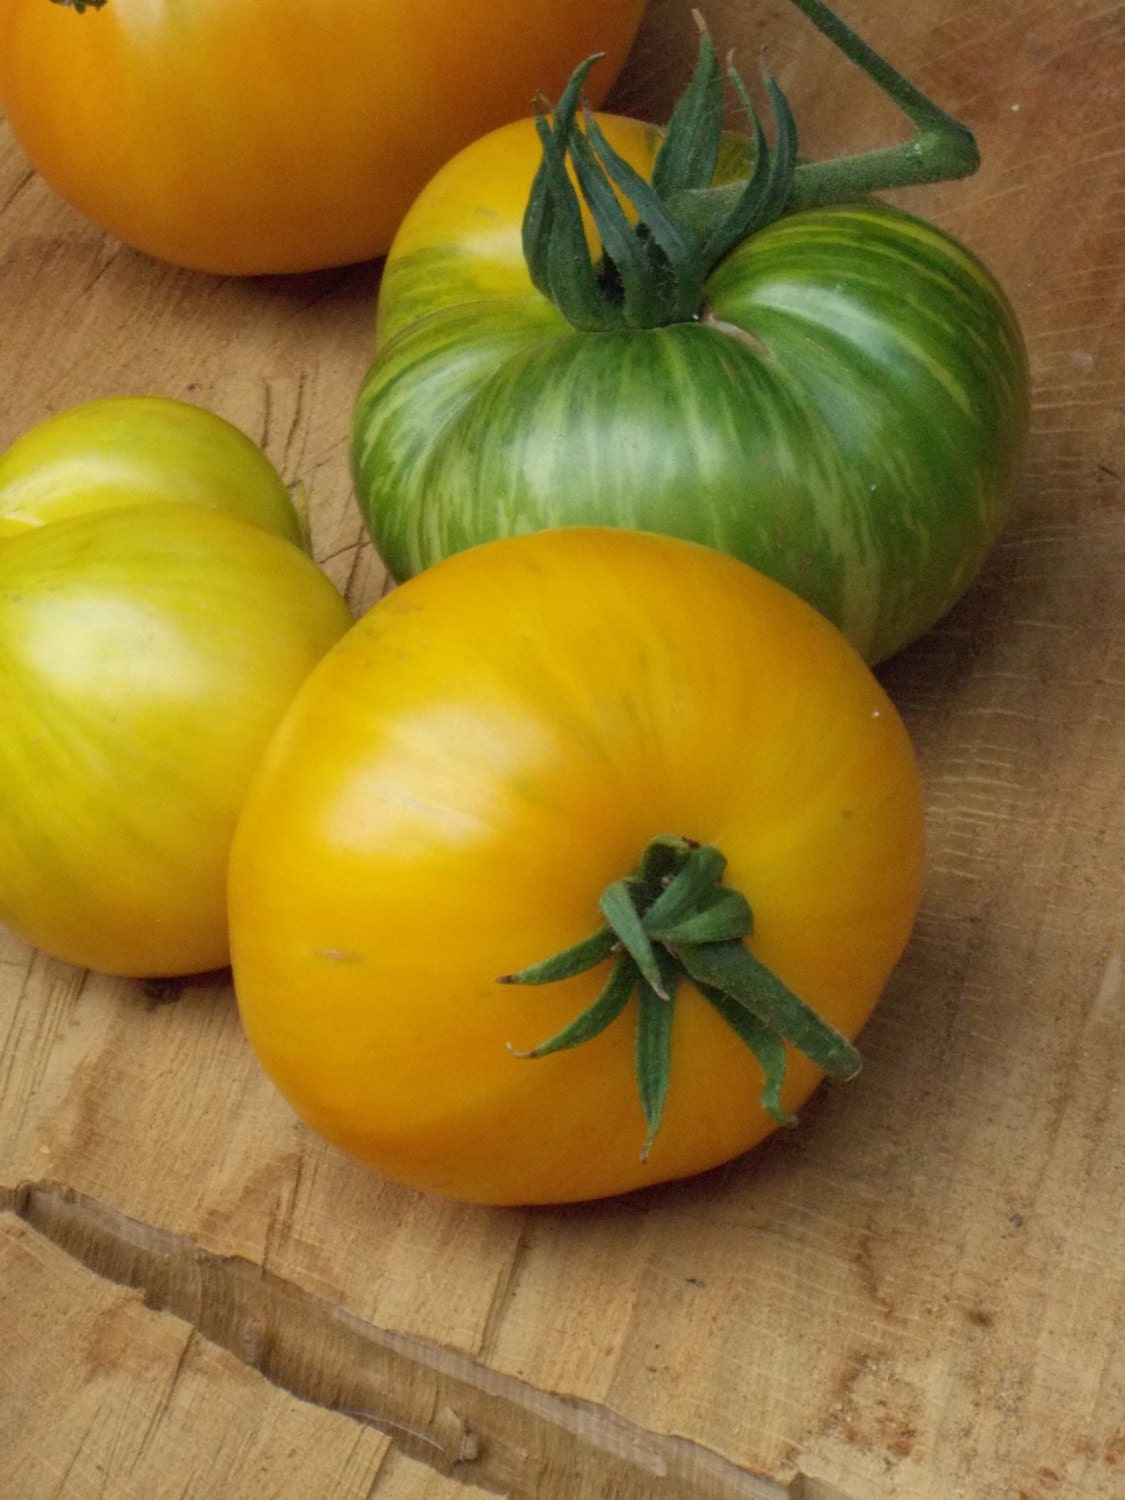 Big Yellow Zebra Tomato Seeds heirloom tomato organic seeds